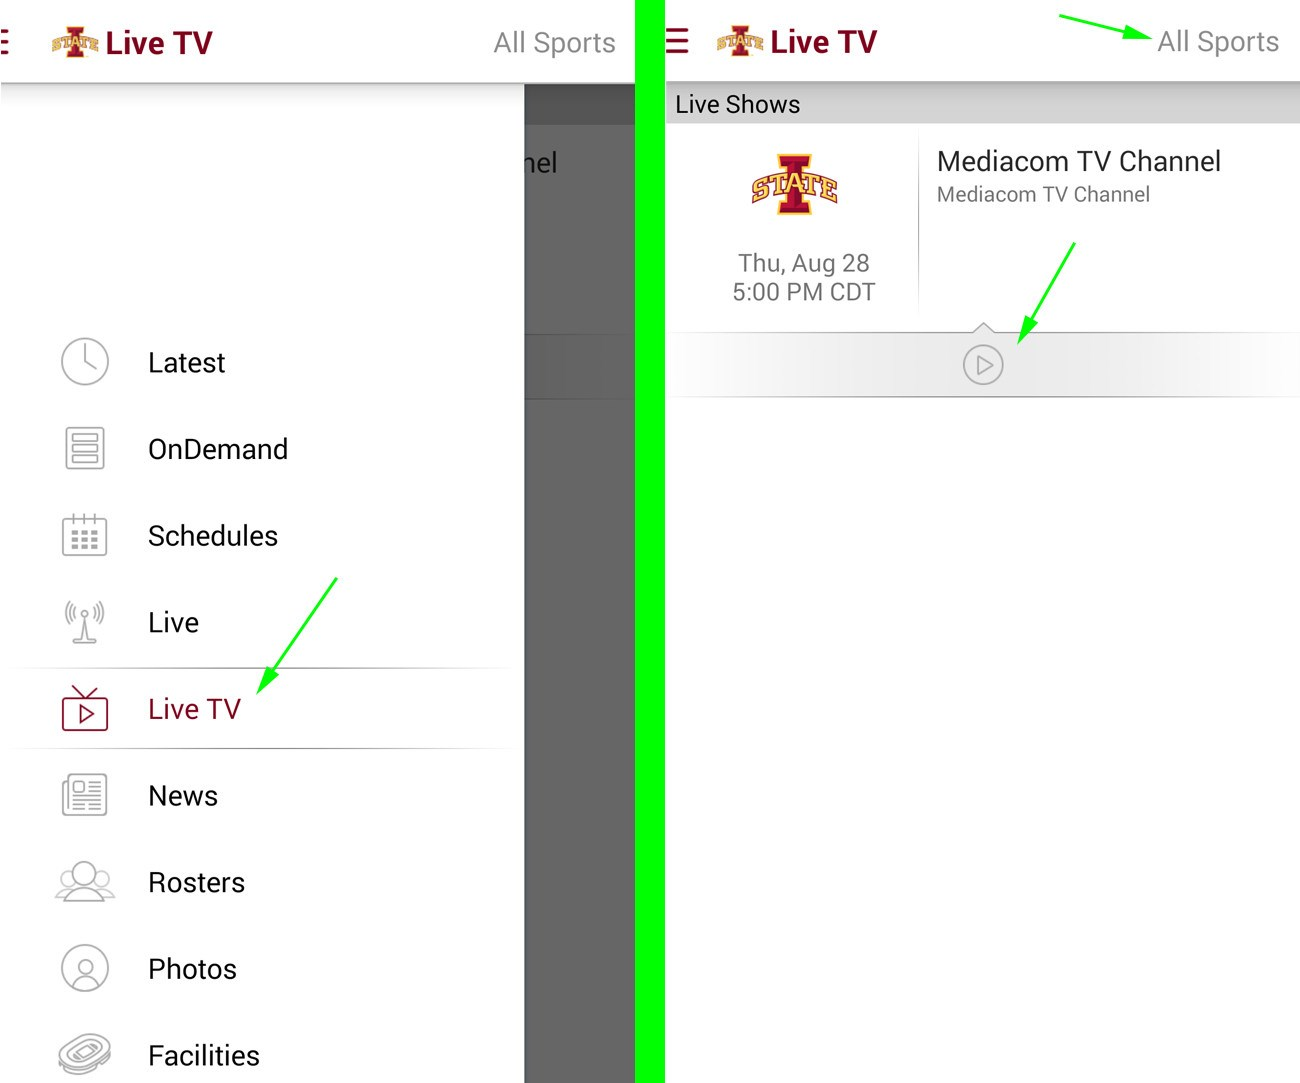 Cyclones tv TV Channel To Go Online - Iowa State University